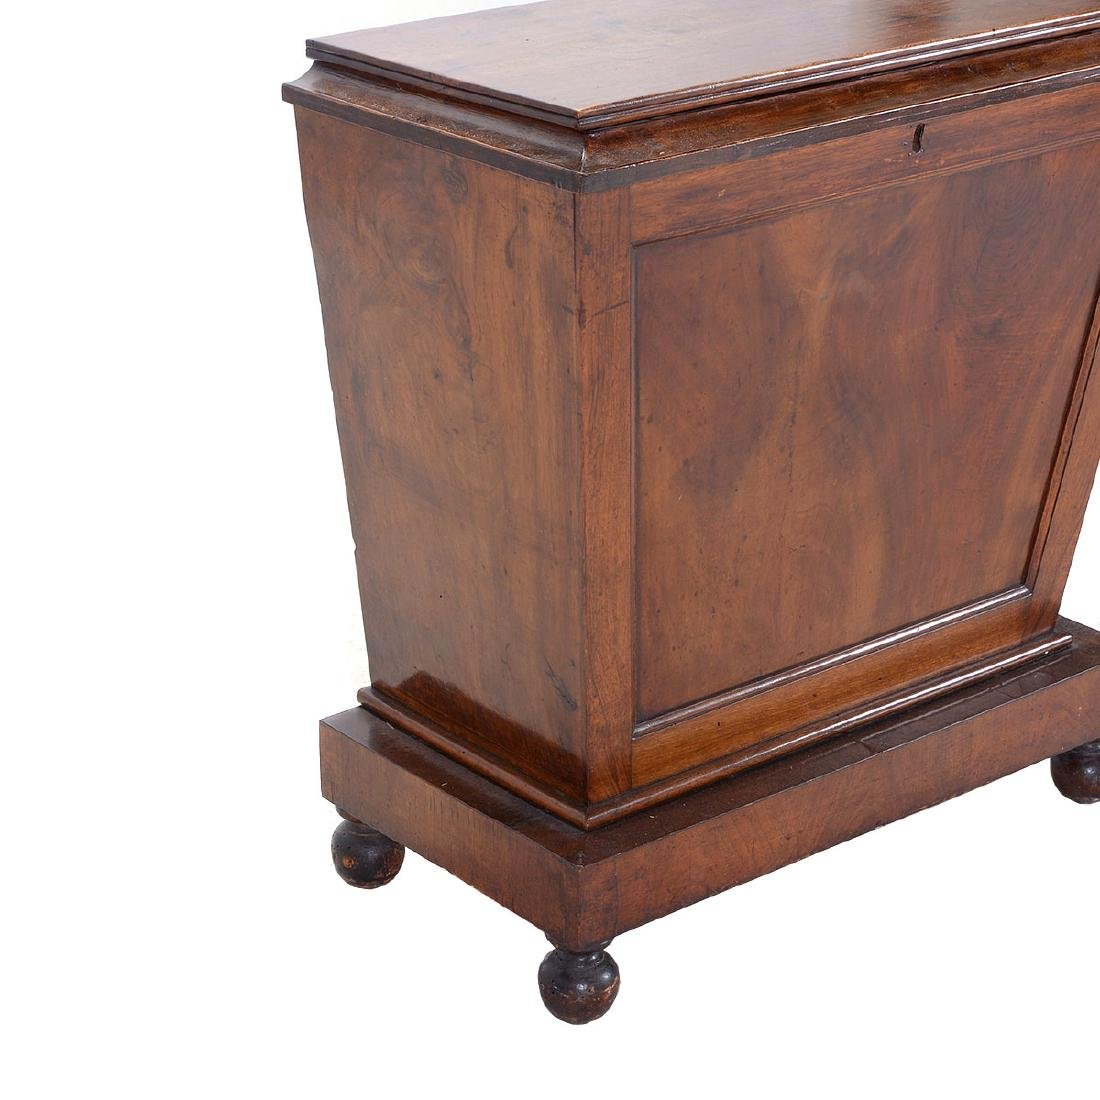 Regency Mahogany Sarcophagus Form Chest, First Quarter - 2